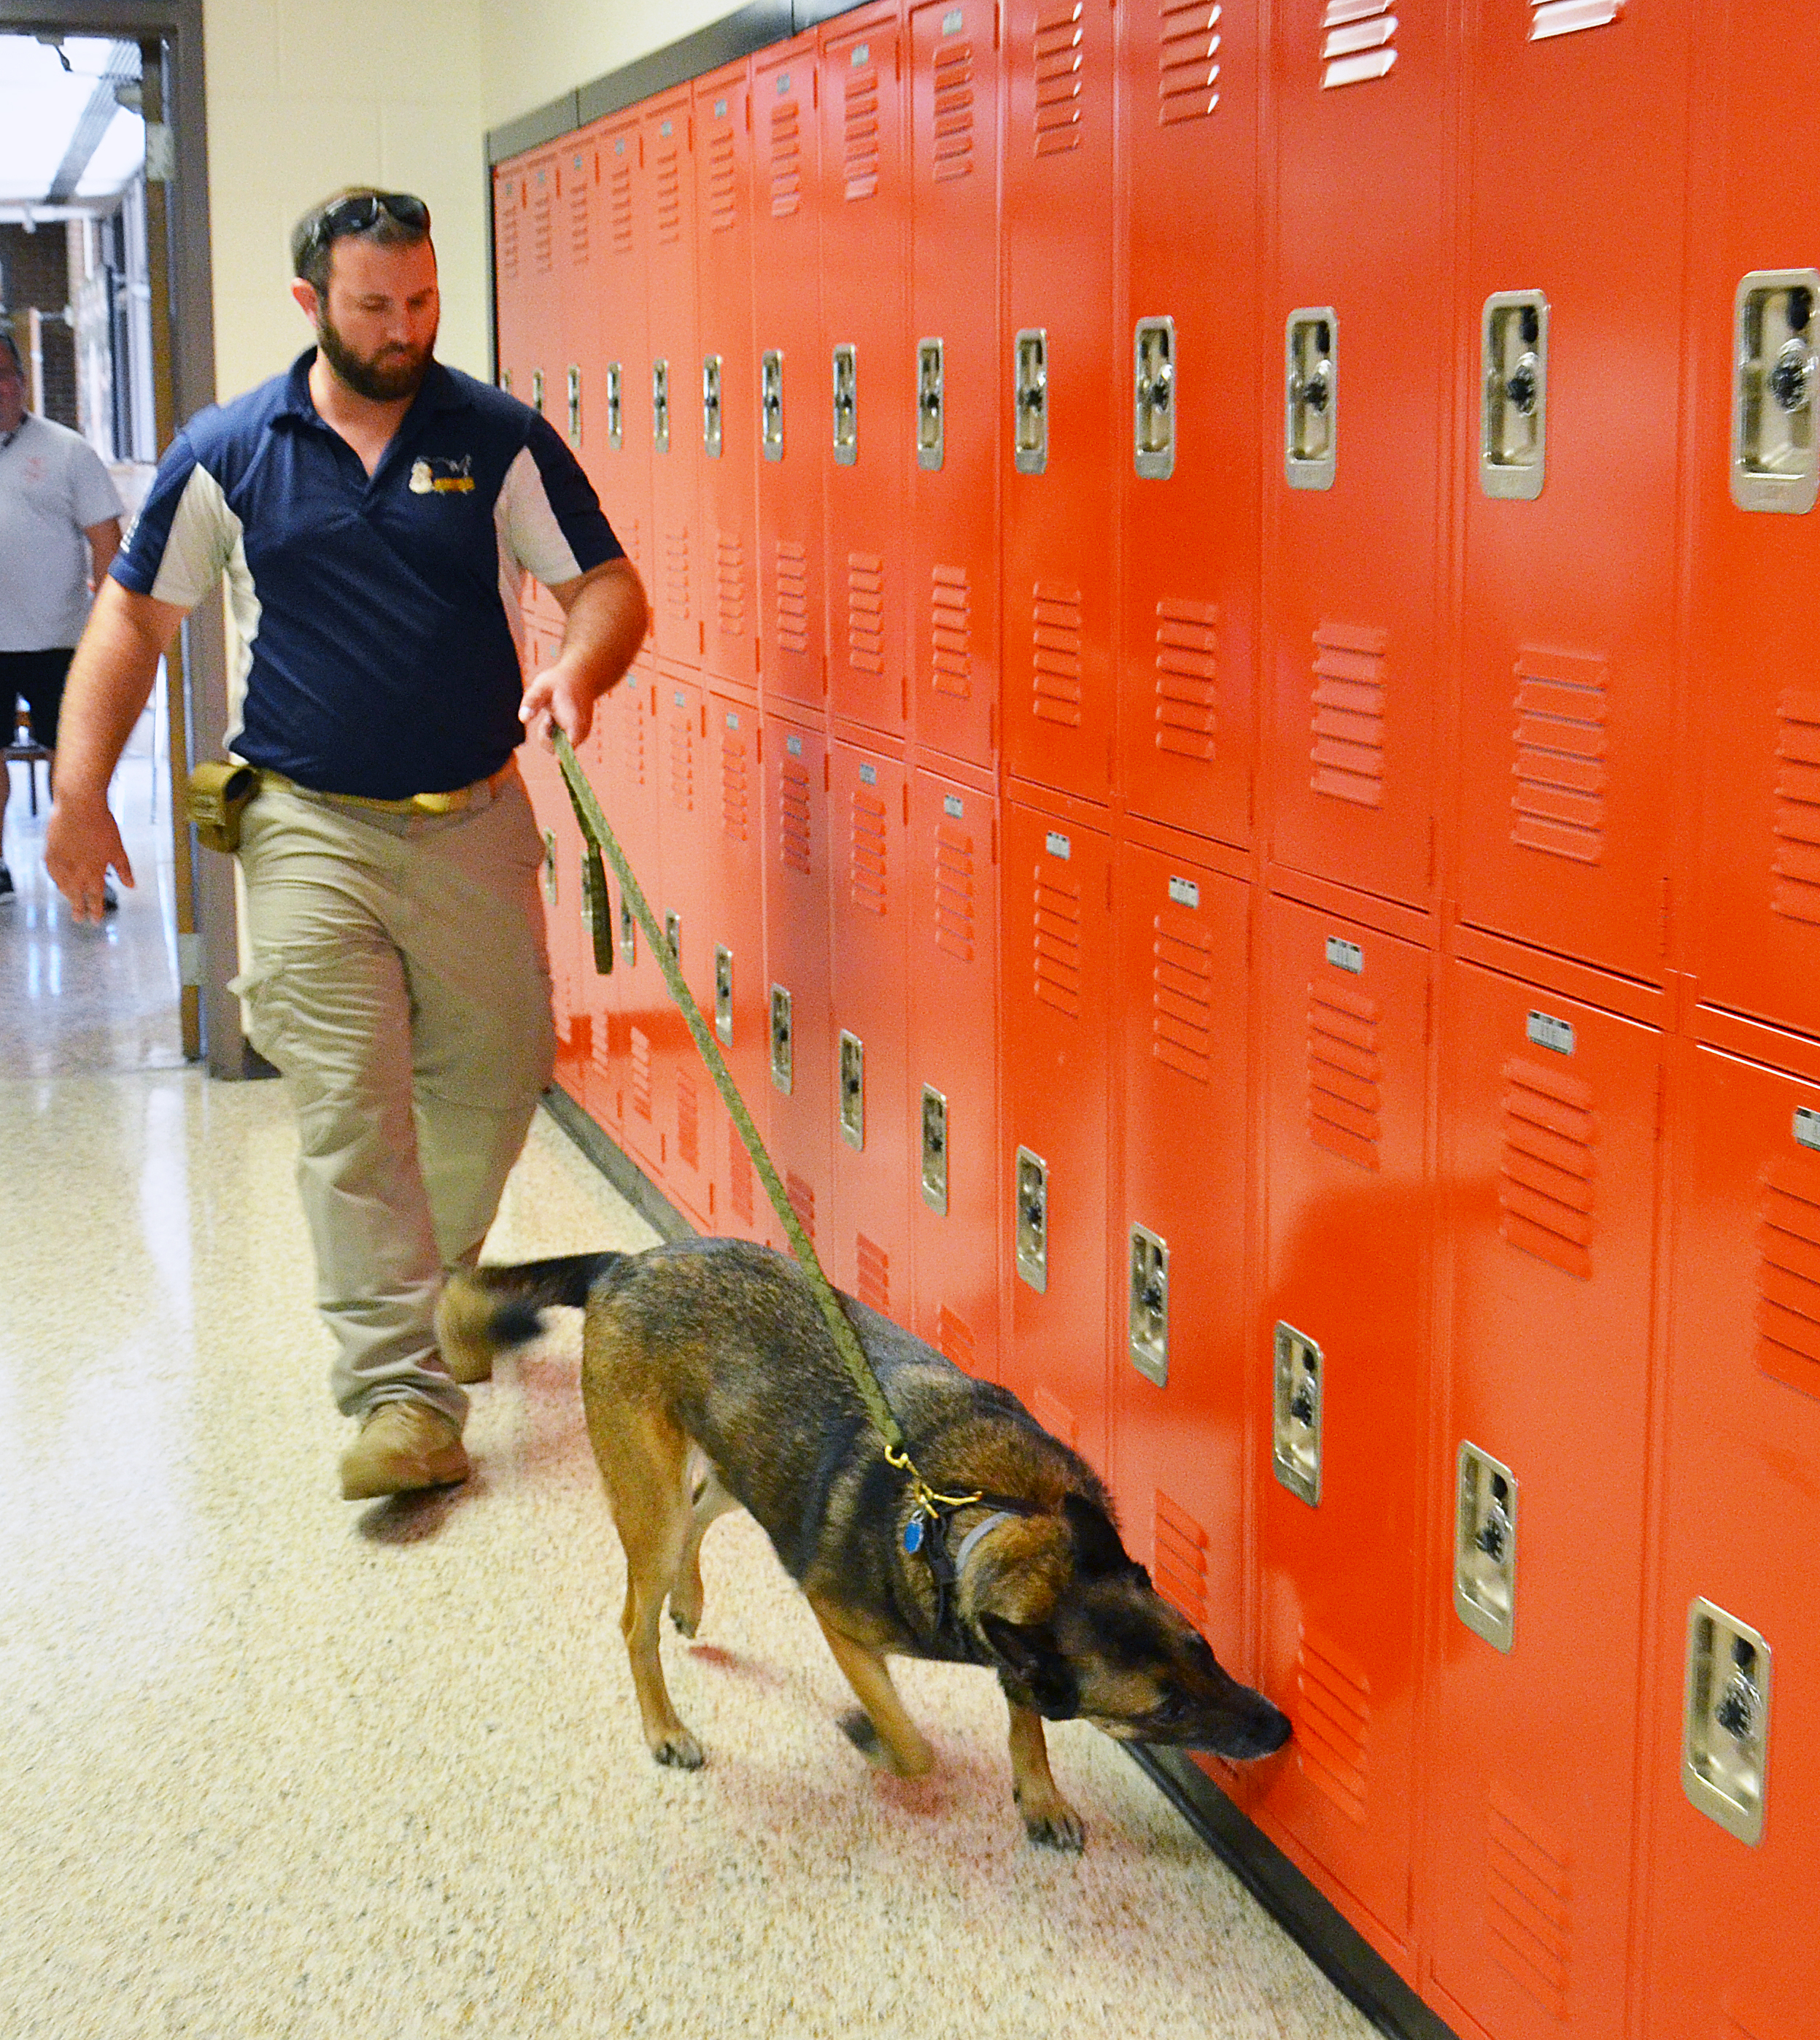 Dog searching lockers in demonstration